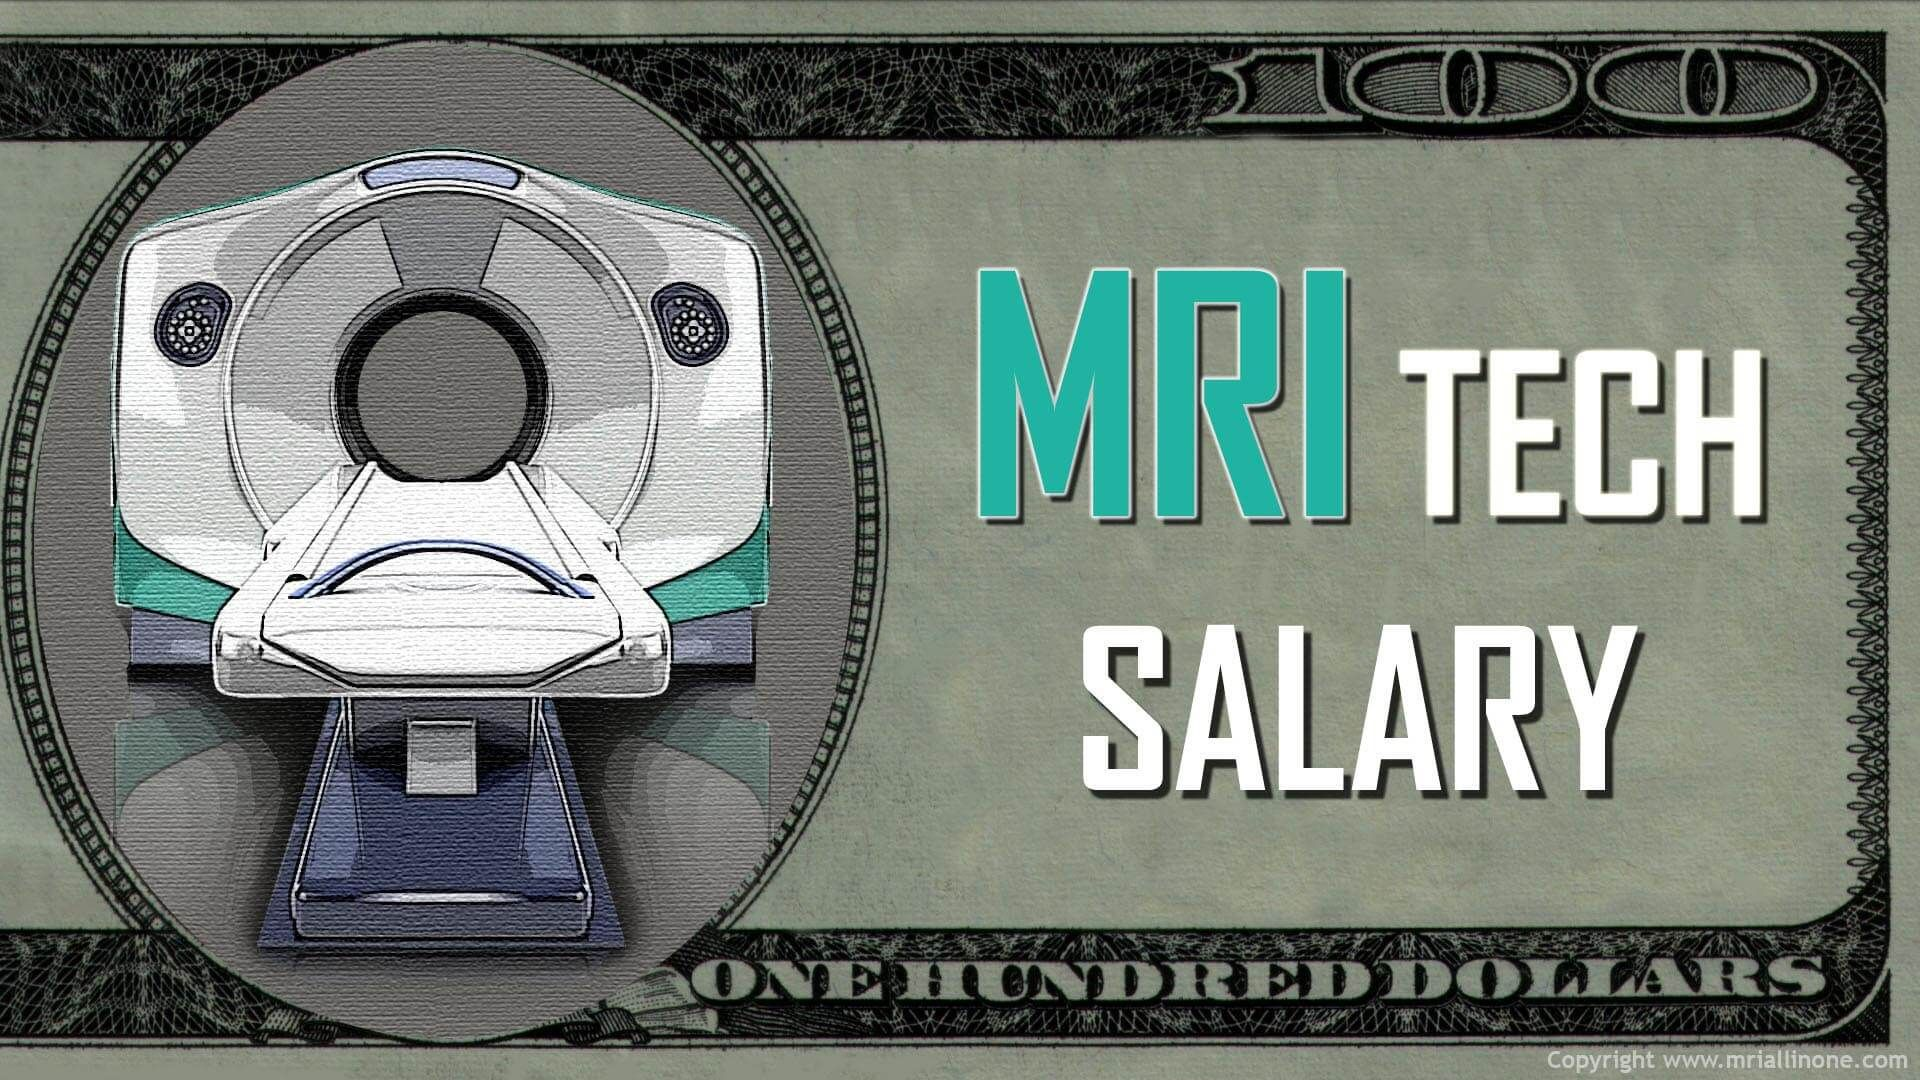 Mri tech salary an article containing tons of